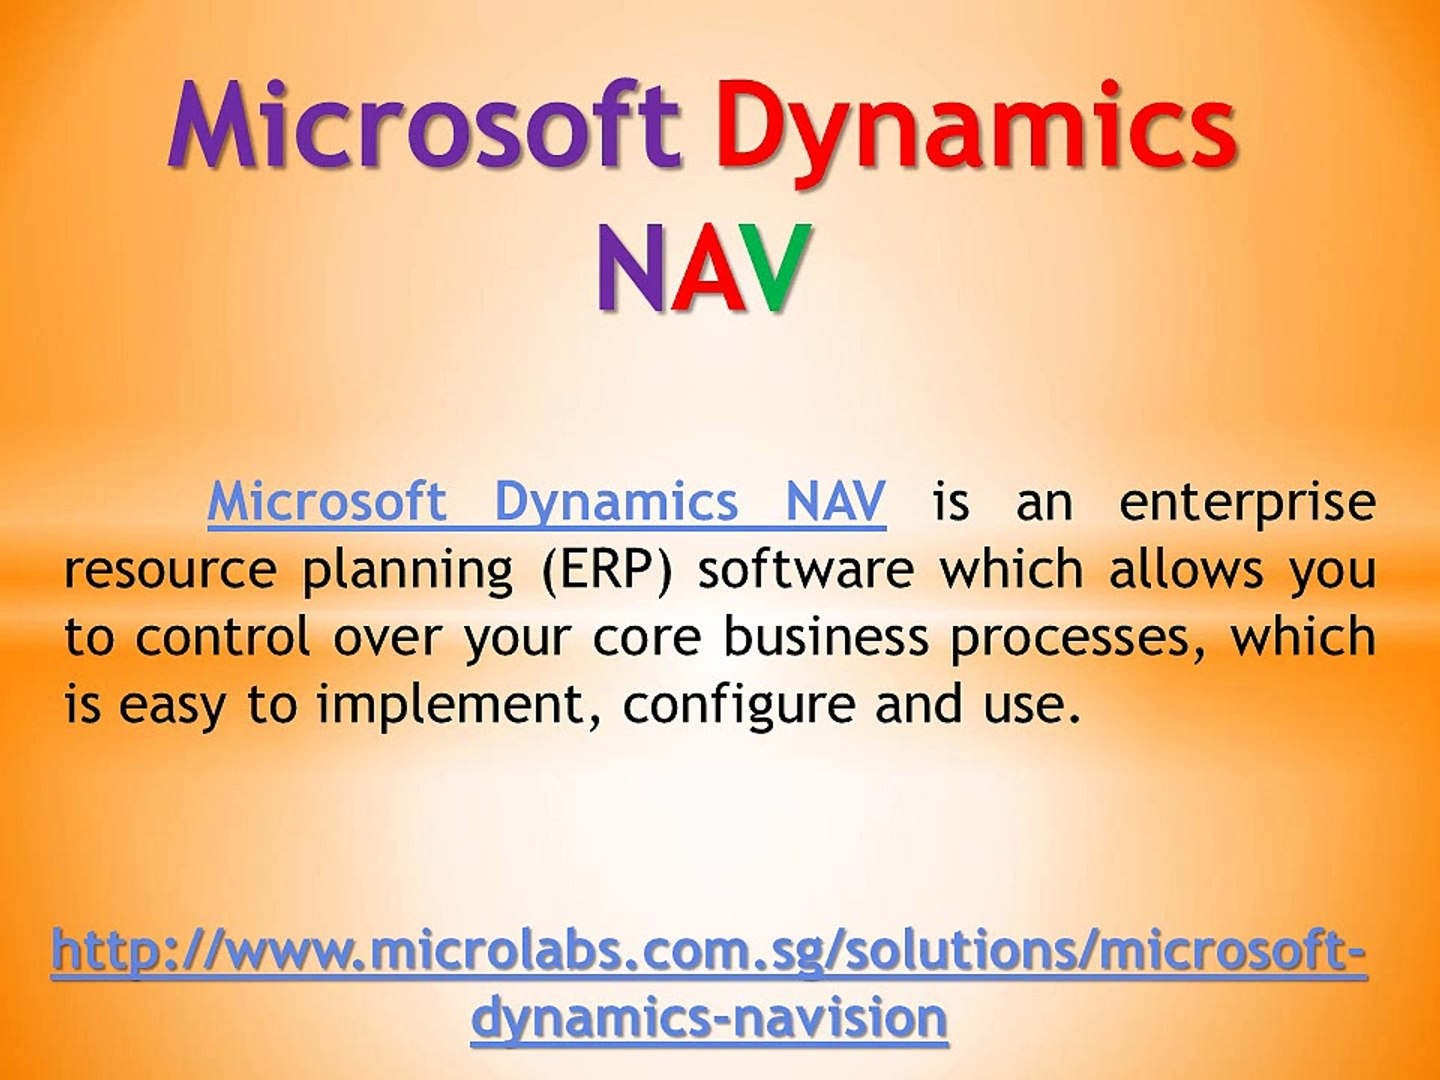 Start your business with Microsoft Dynamics NAV today